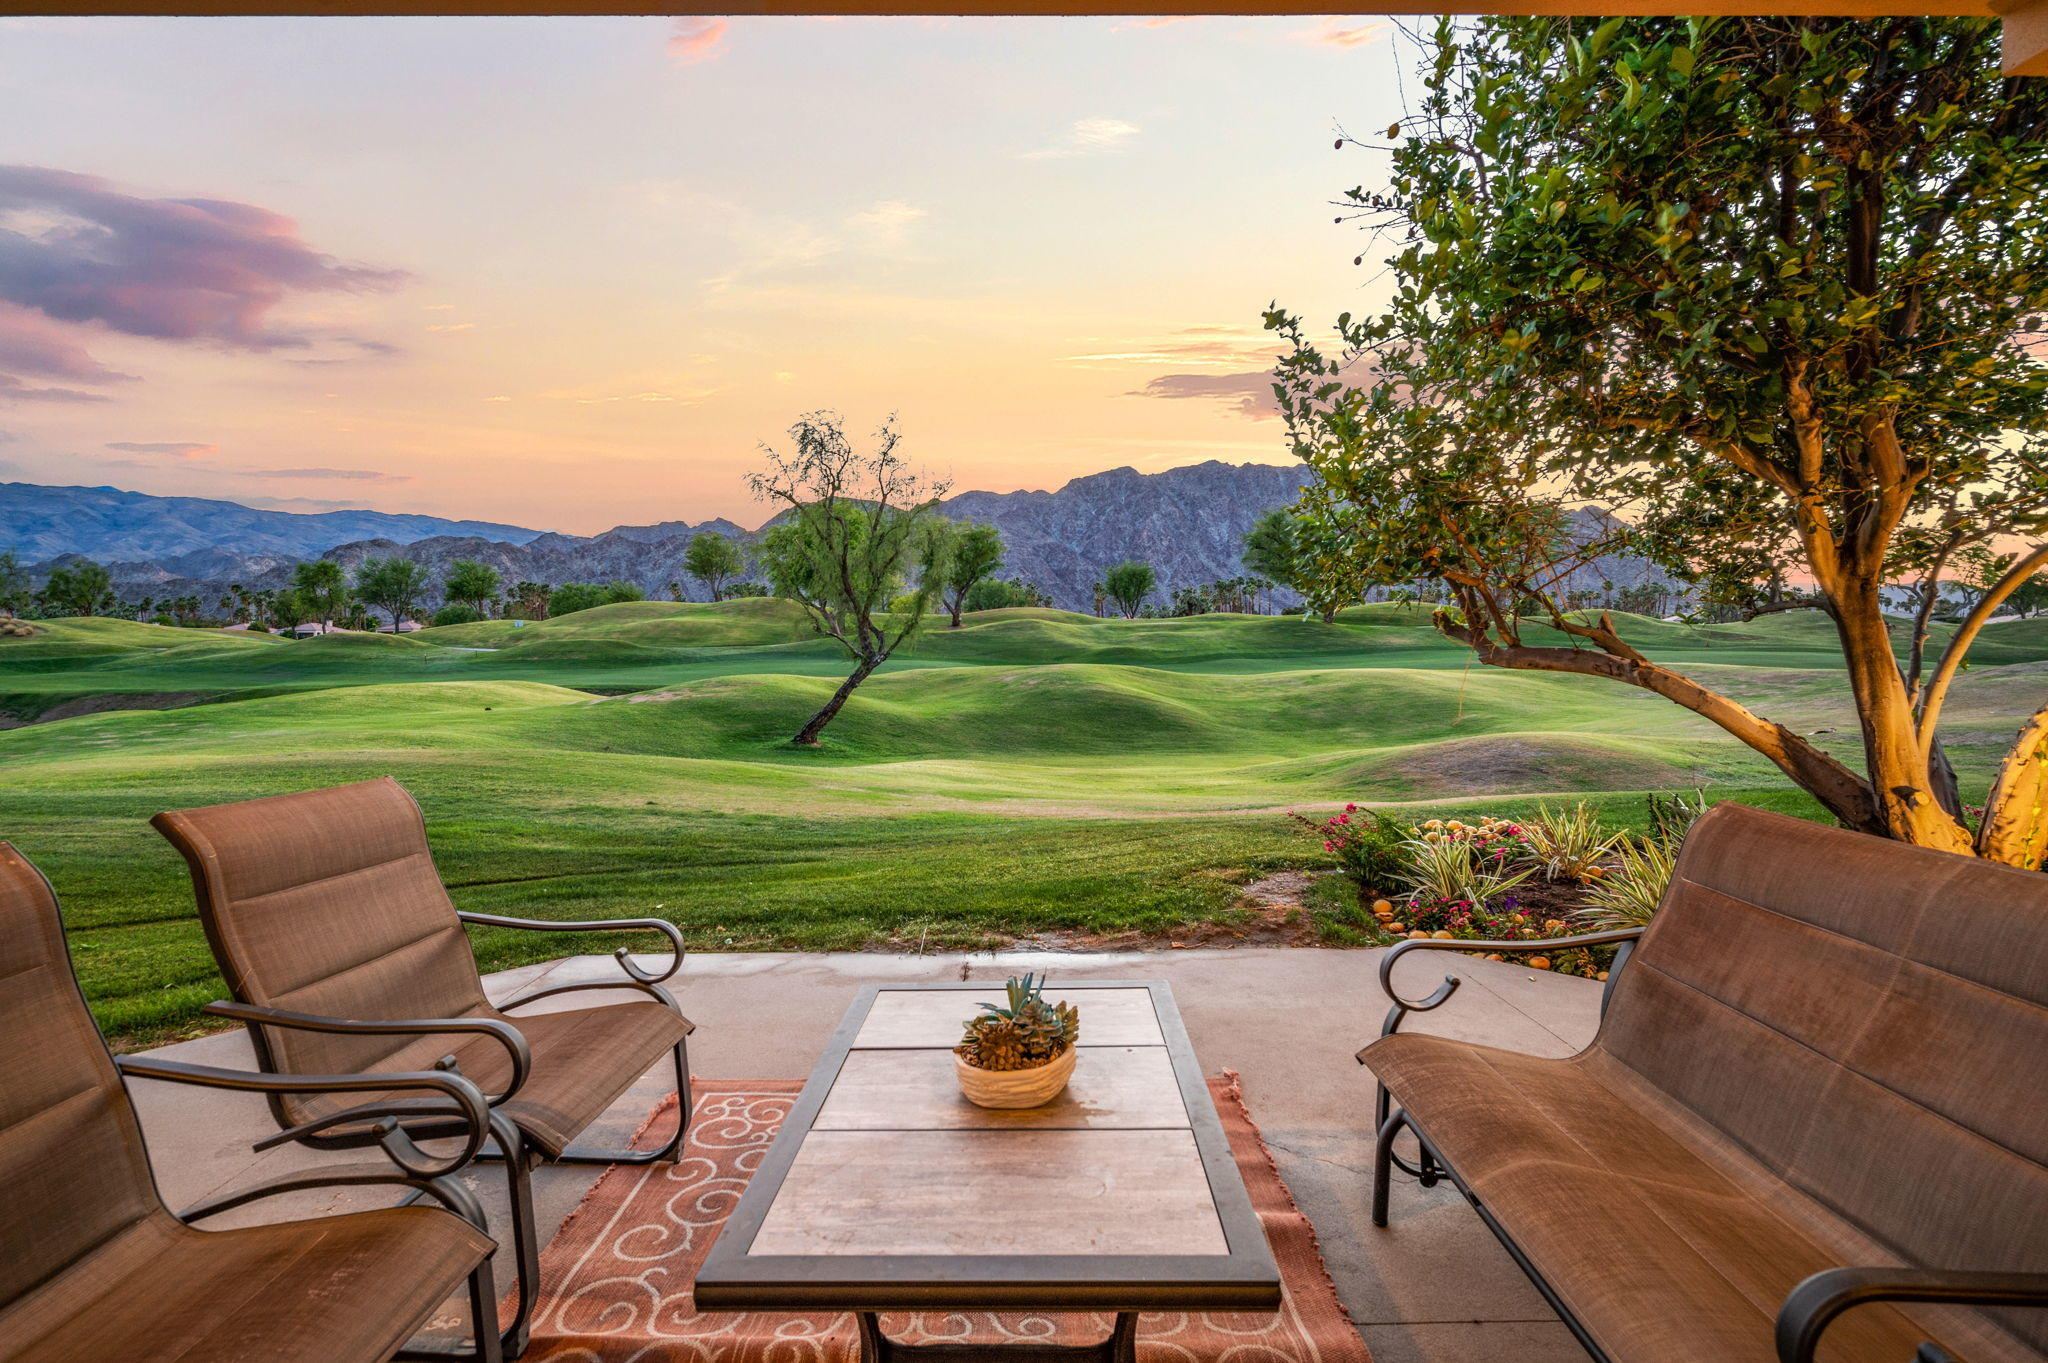 This stunning contemporary home will enchant you with magical sunsets and picturesque views of the rolling double fairways and Santa Rosa mountains in the distance. The interior features fine finishes and accents throughout, high ceilings, and ample window space to enhance the light and views. There are three bedrooms each with its own en-suite bath, an additional space to use as a study or office, and a living room wet bar as the perfect addition to entertain guests with views to the fairway and mountains. The enclosed side yard is ideal for those with a family pet and is large enough to build a private pool if desired, or take advantage of the community pool across the street, just steps to your morning, afternoon, or evening swim. Whether as your primary residence or second home, enjoy some of the finest in desert living at this PGA West gem.